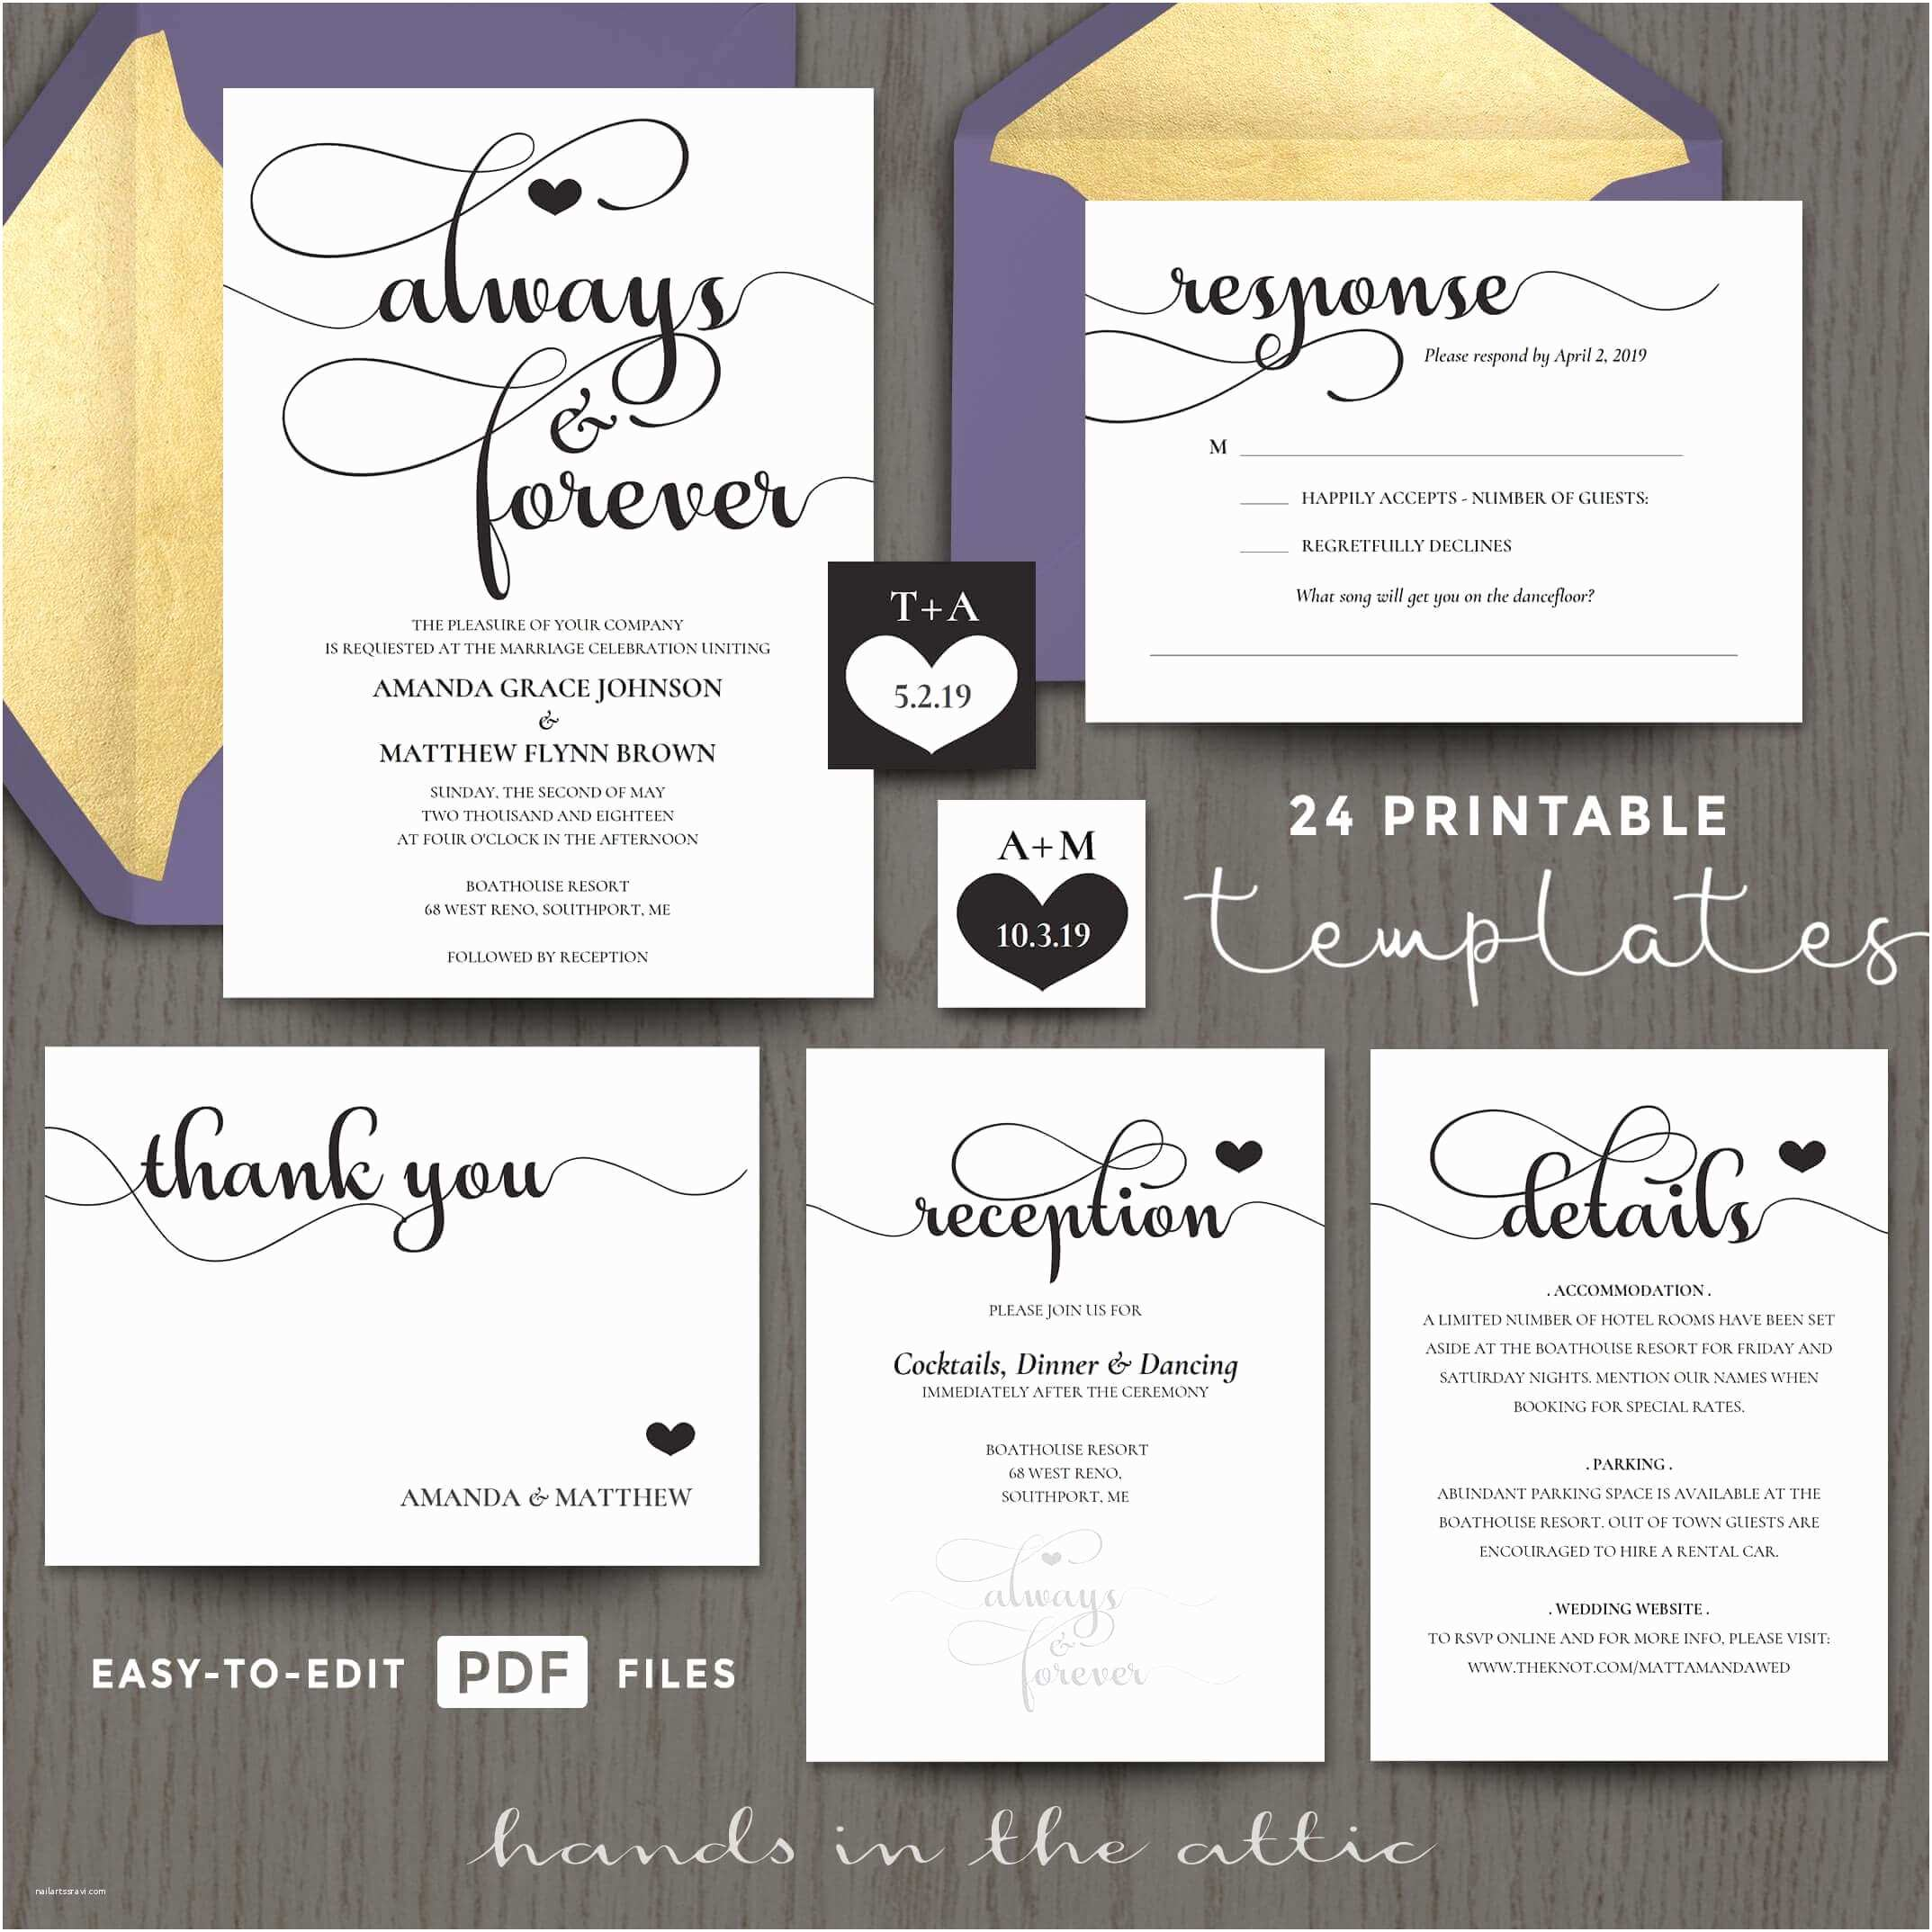 Wedding Invitation software Always and forever Wedding Invitation Templates